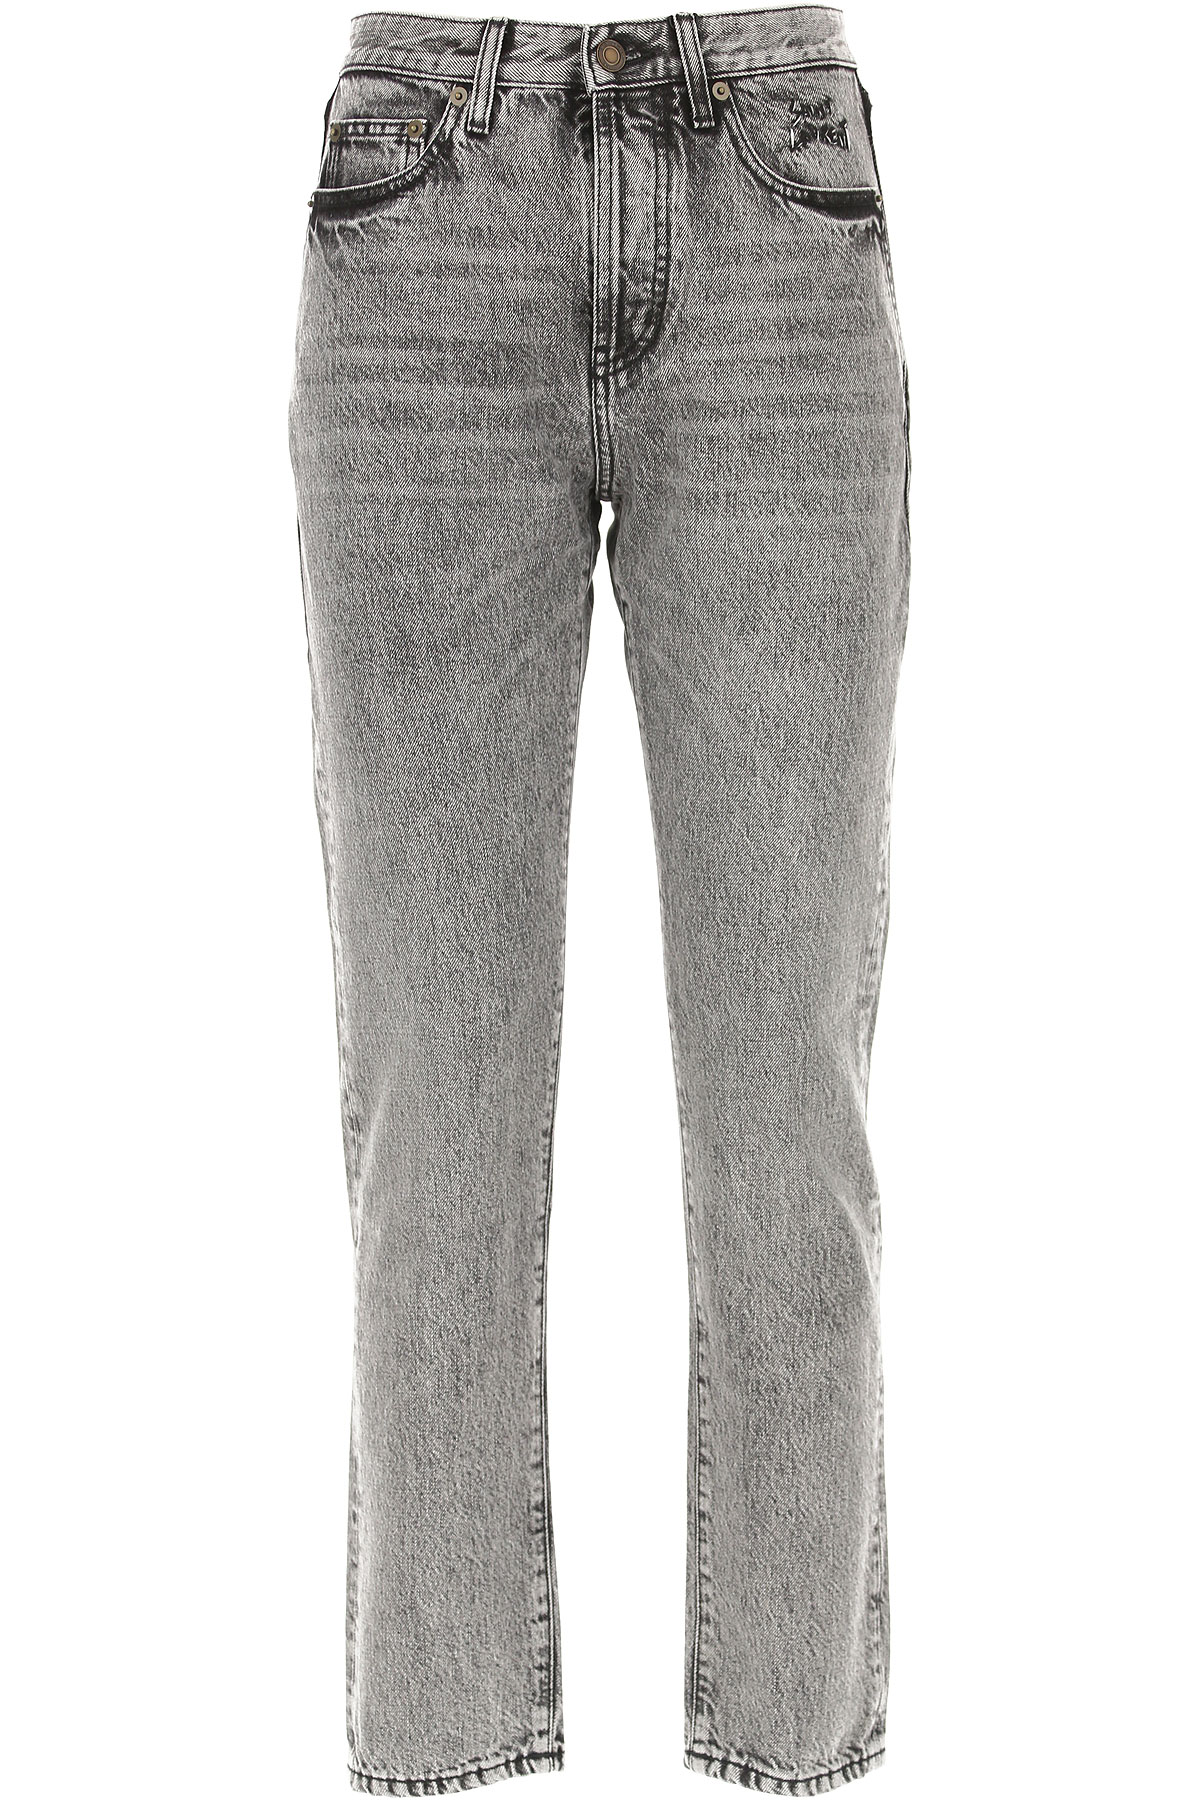 Yves Saint Laurent Jeans On Sale in Outlet, Grey, Cotton, 2017, 25 26 27 28